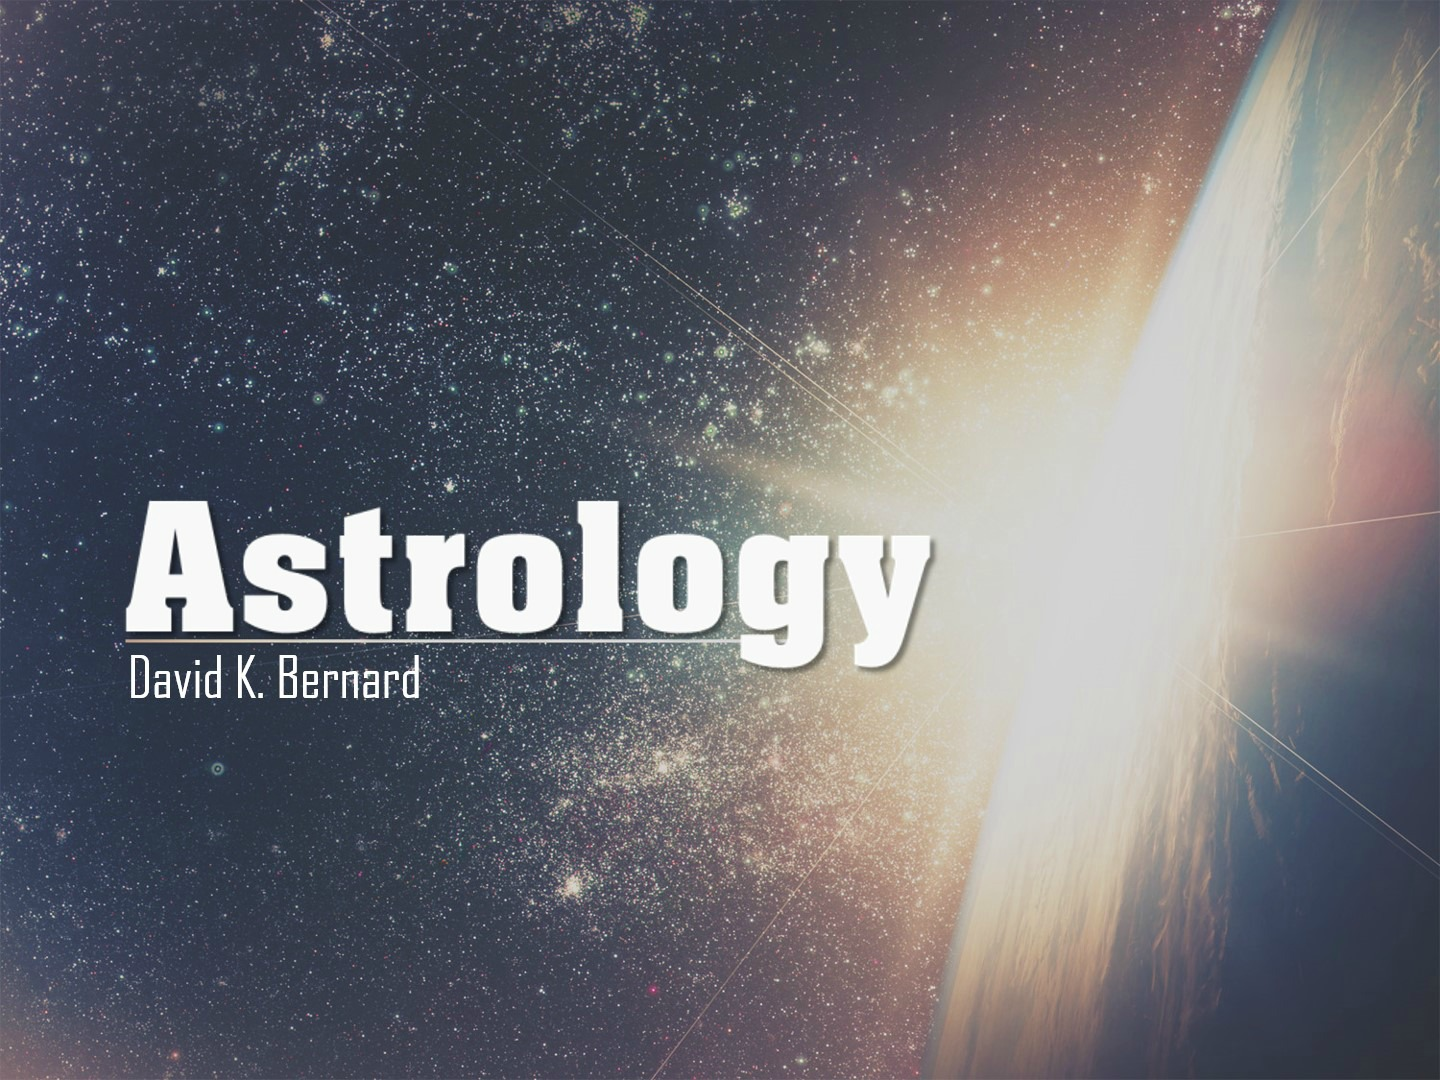 astrology definition bible